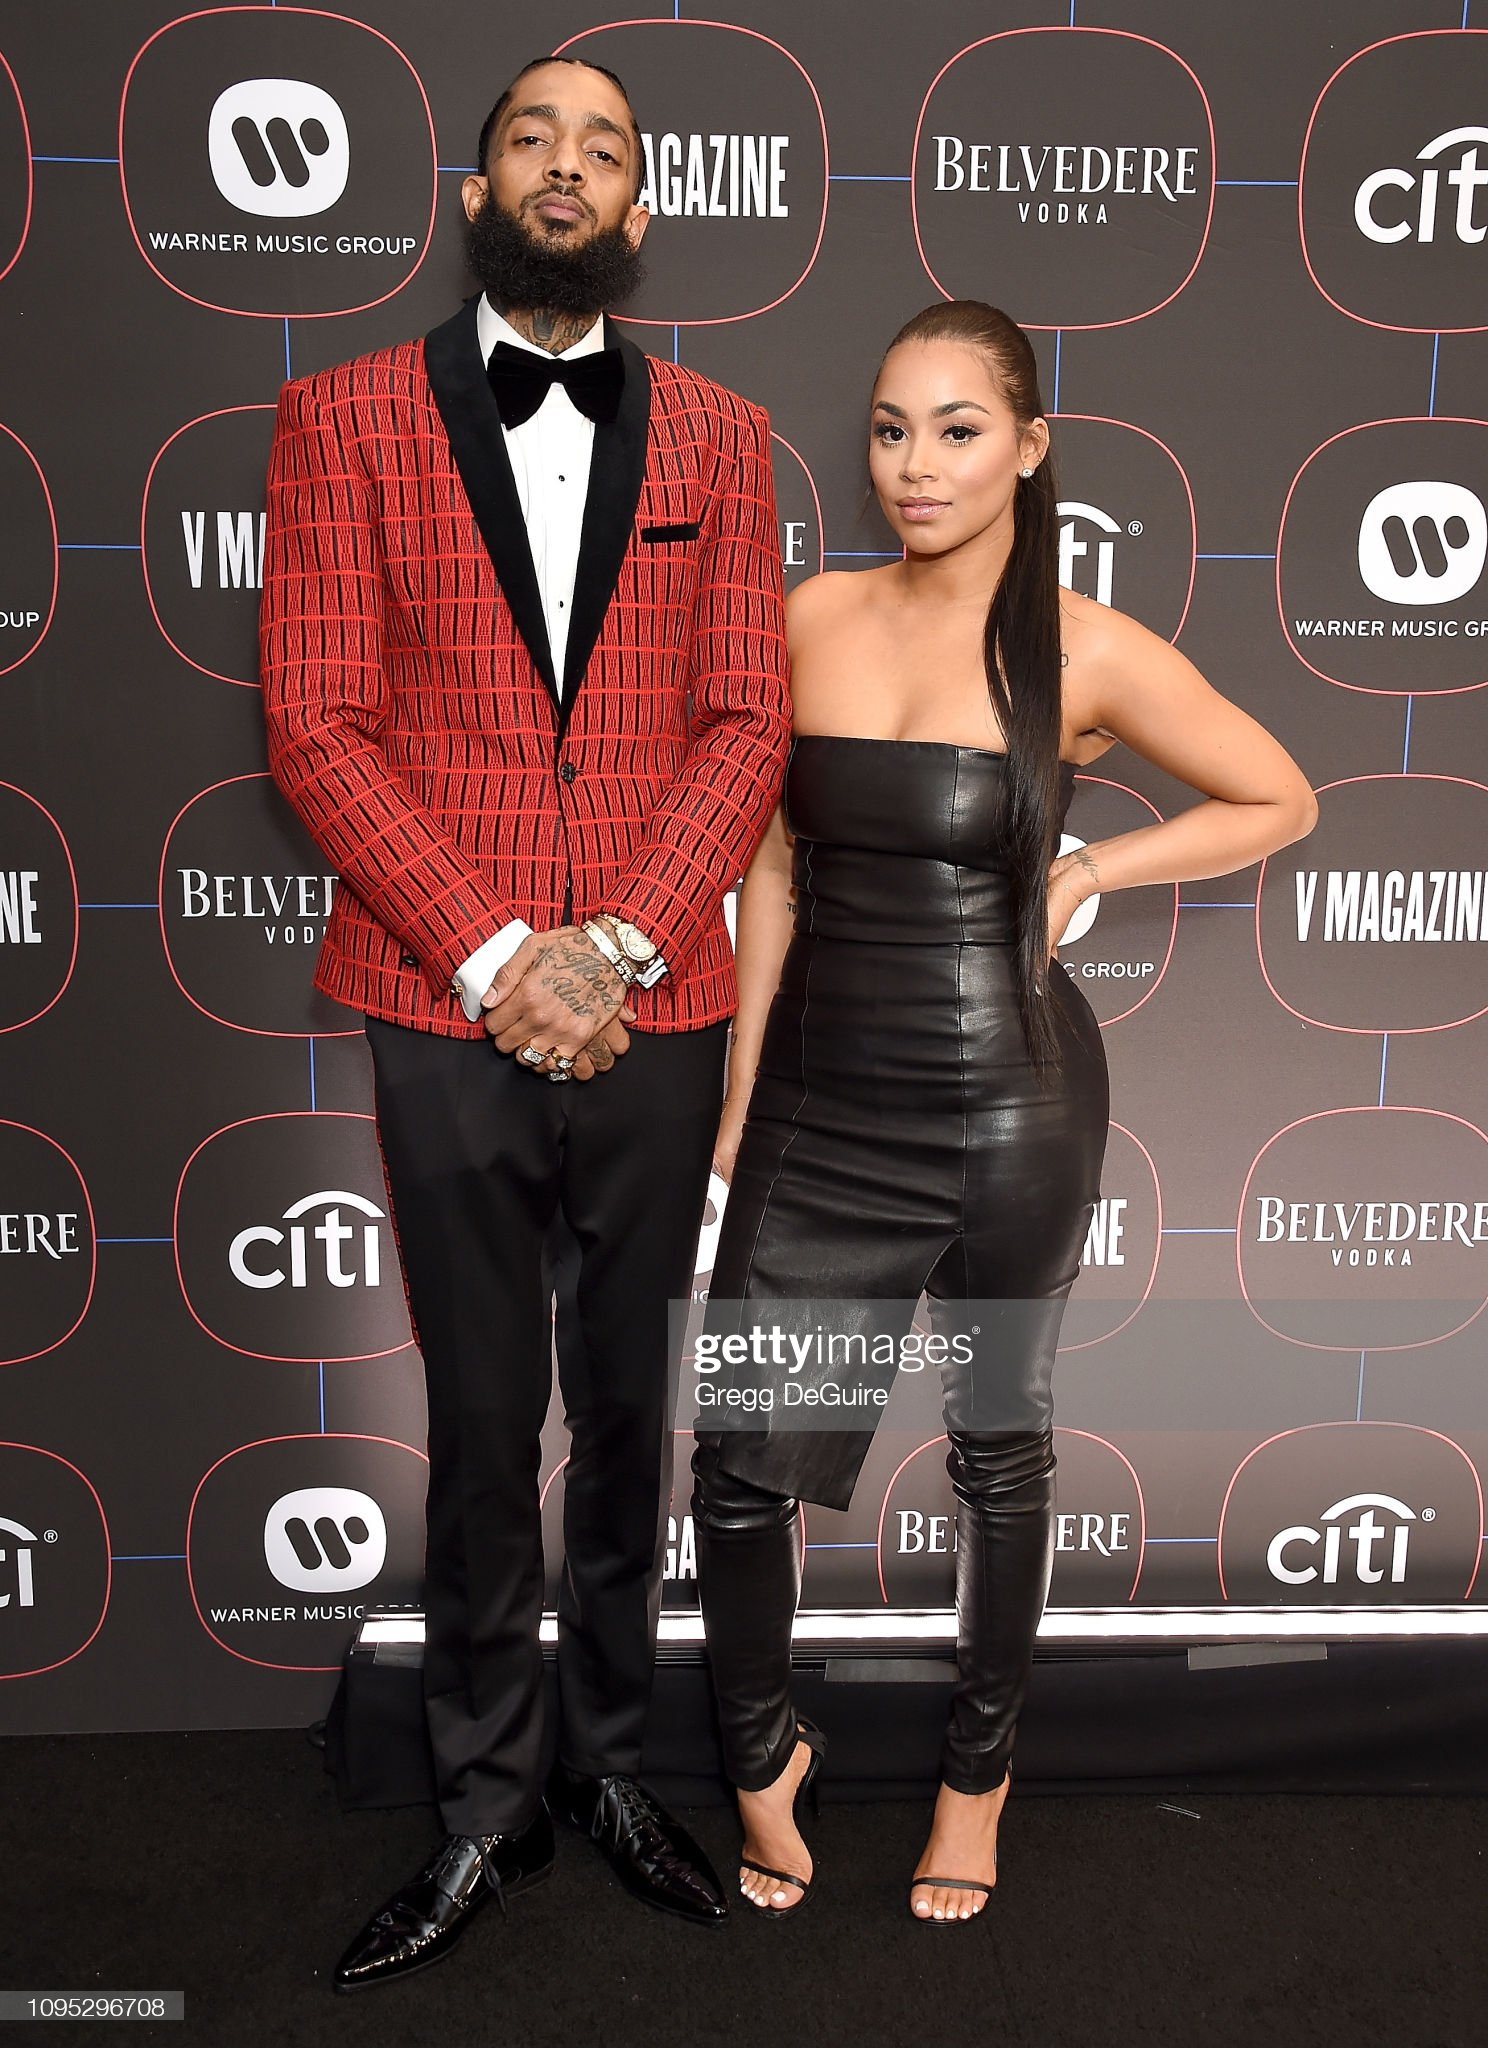 ¿Cuánto mide Lauren London? - Altura - Real height Nipsey-hussle-and-lauren-london-arrive-at-the-warner-music-group-at-picture-id1095296708?s=2048x2048